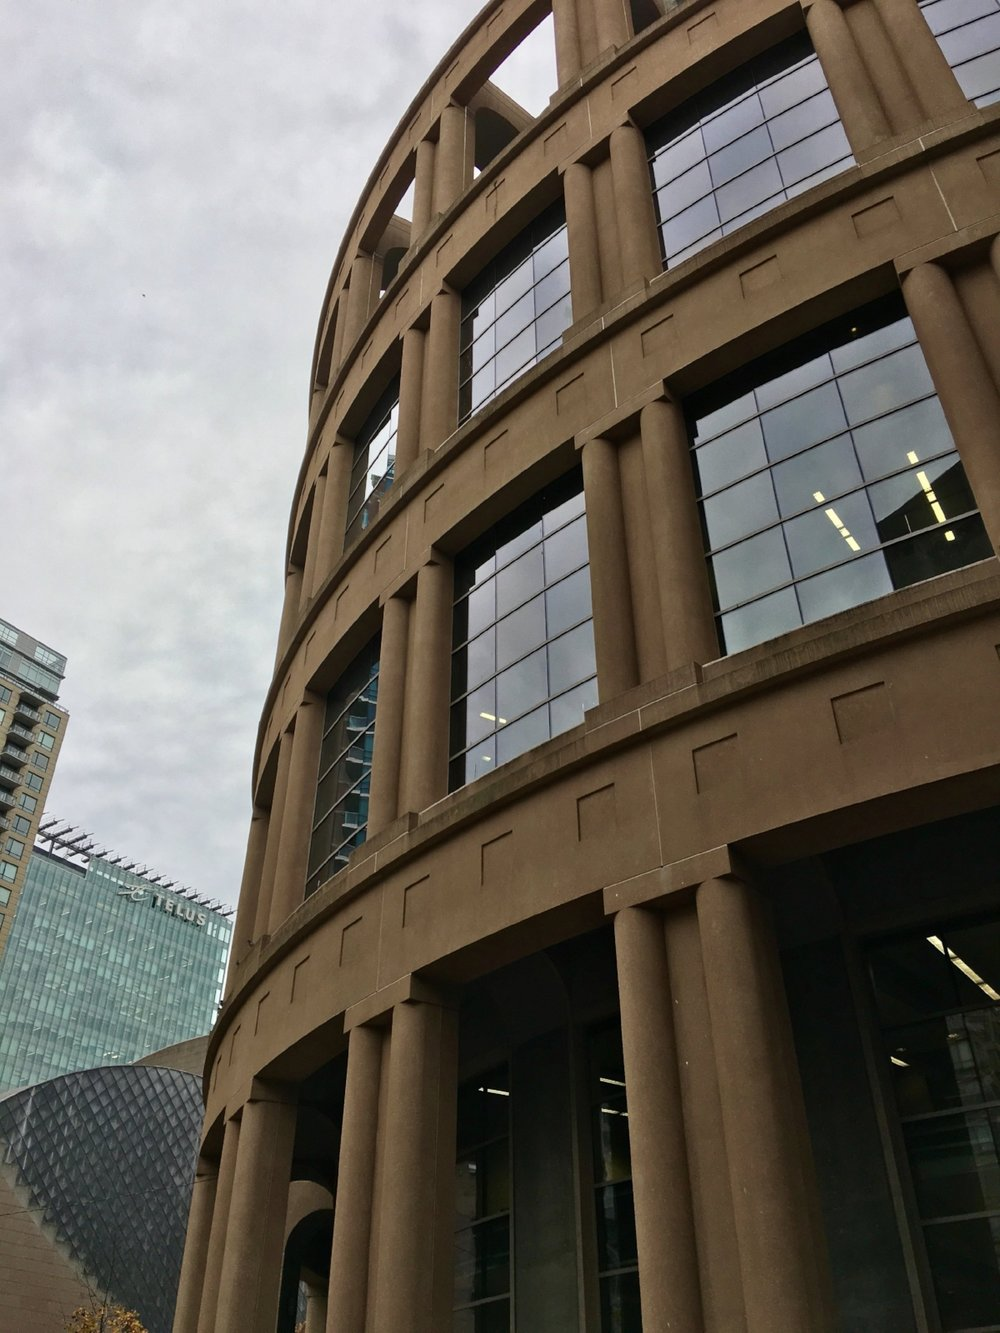 This was the branch of the Vancouver Public Library that I spent a couple of hours in on Friday while Kurt was at his sessions. It was a beautiful building, both inside and out!